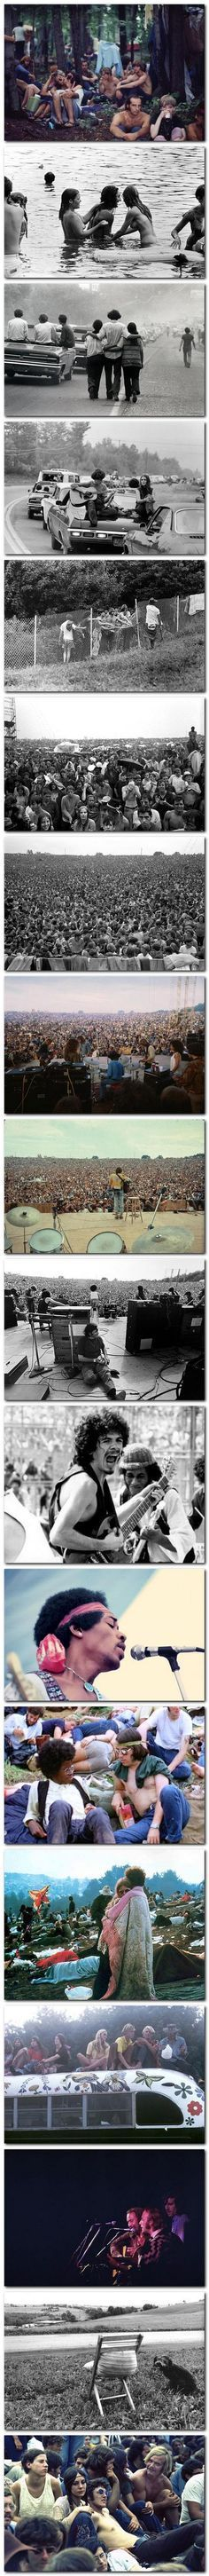 Woodstock 1969; Bob and Larry went